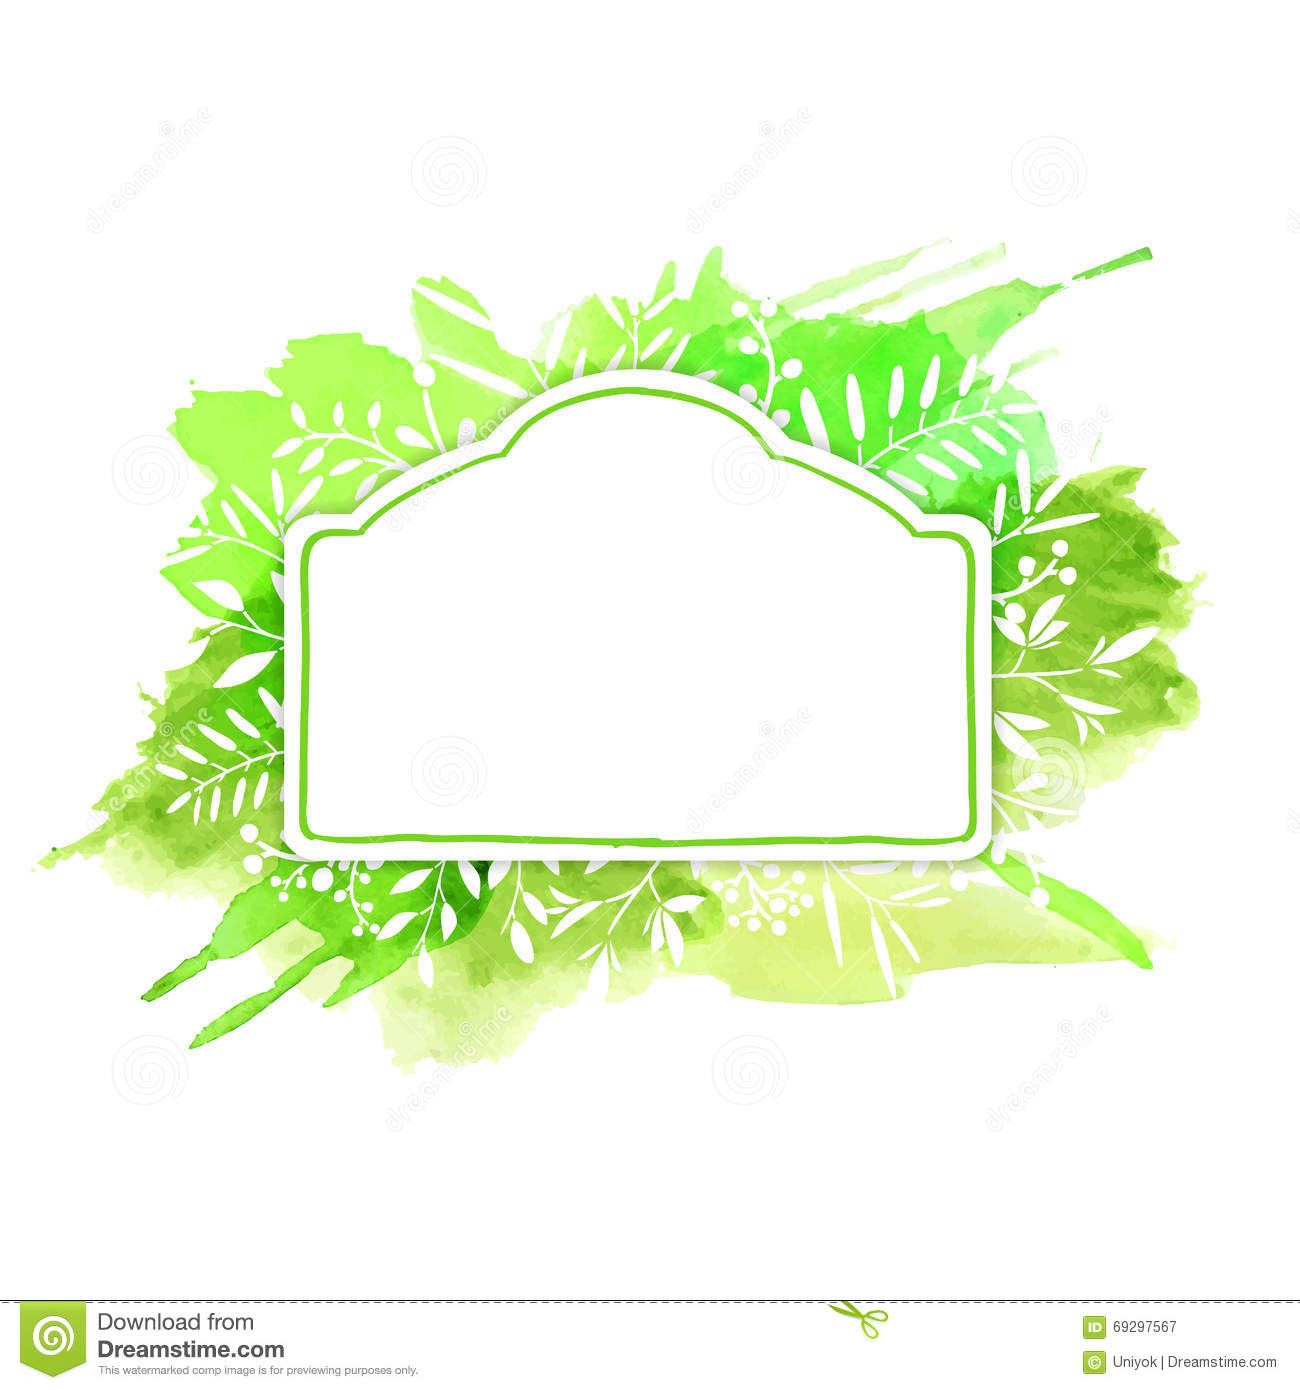 template design banners posters postcards cards with summer spring natural design frame in vintage style with stock vector illustration of card concept 69297567 dreamstime com